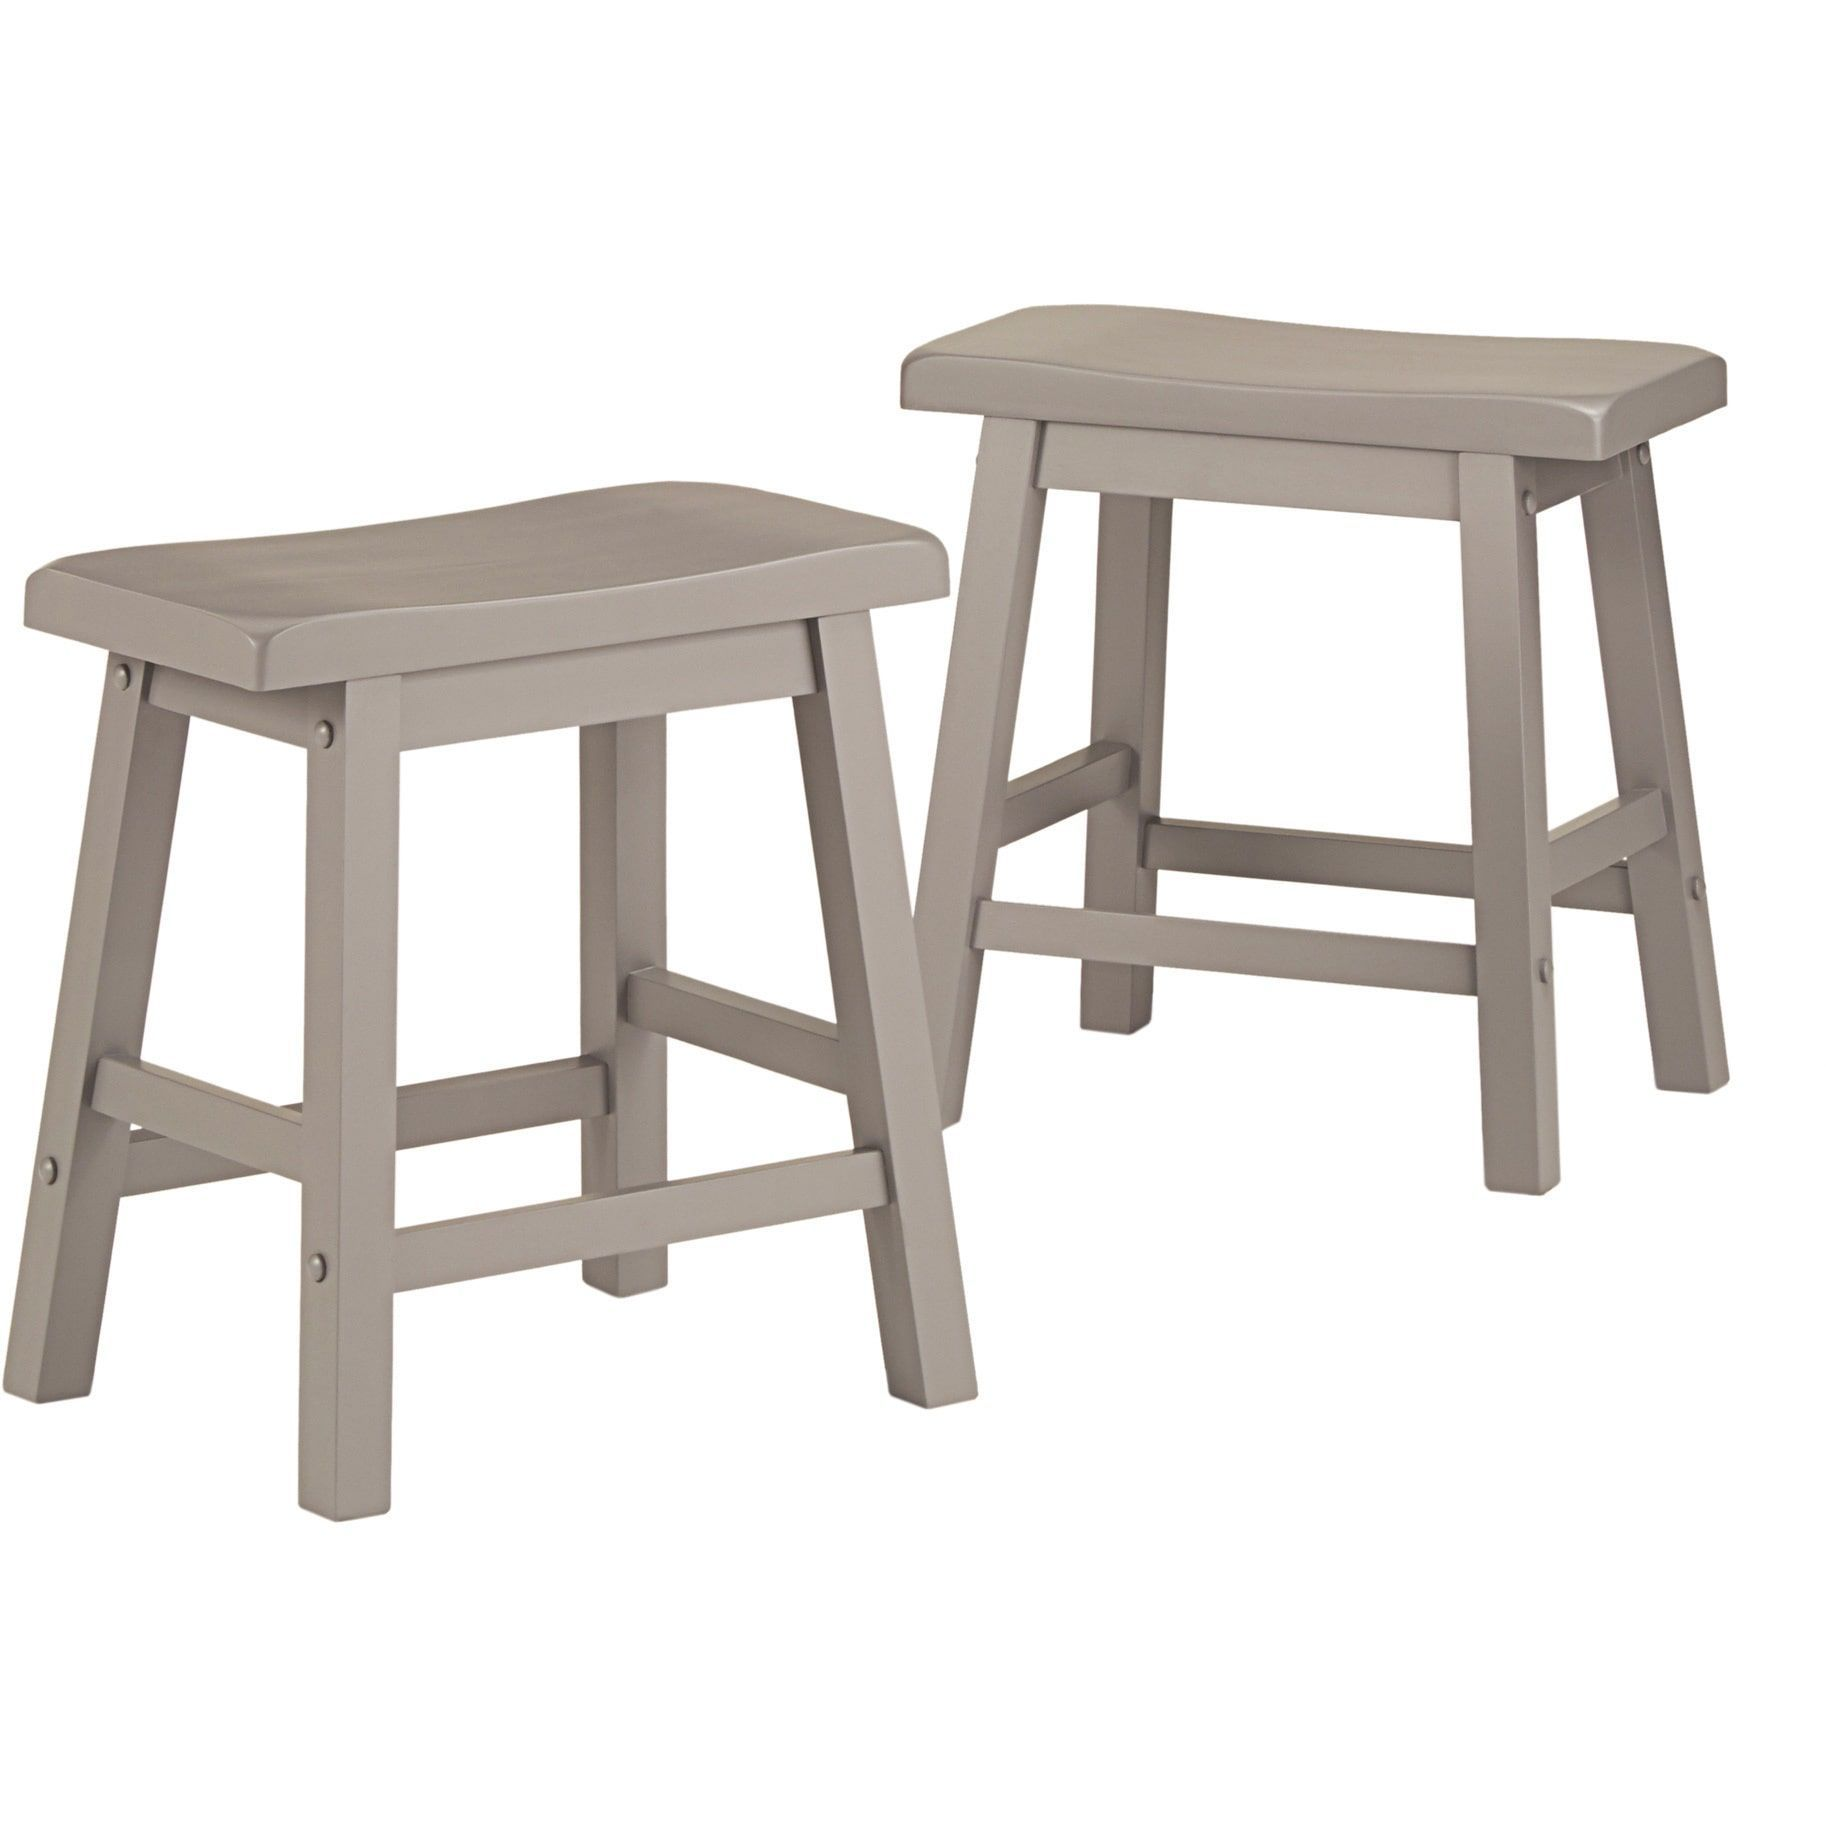 Groovy Salvador Saddle Back 18 Inch Backless Stool Set Of 2 By Machost Co Dining Chair Design Ideas Machostcouk